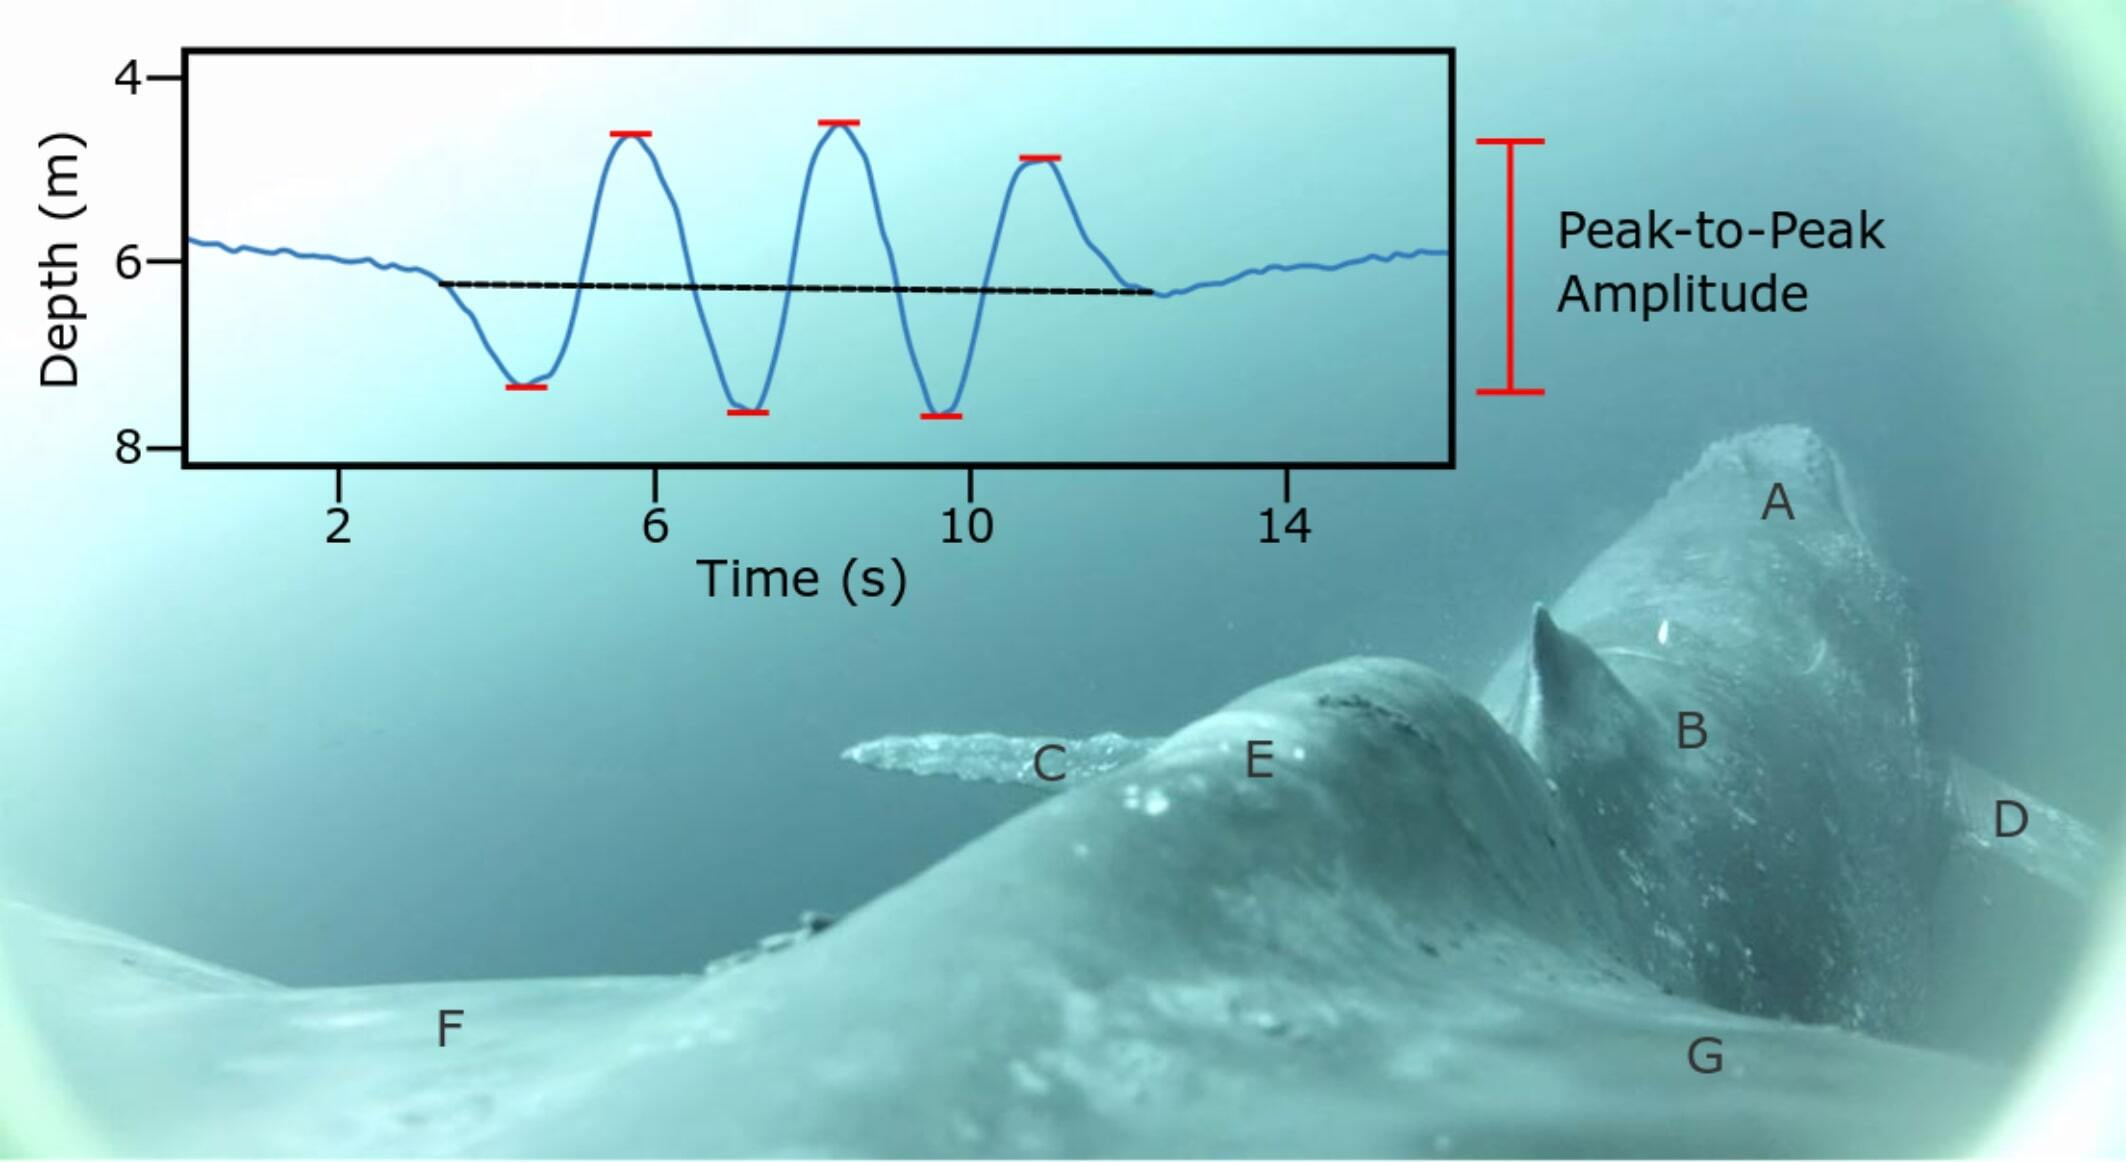 Schematic showing our peak-to-peak amplitude measurement methods.  The background is a video still from the deployment of interest. Letters correspond to the: rostrum (A), dorsal fin (B), left flipper (C), right flipper (D), peduncle (E), left fluke blade (F), right fluke blade (G).